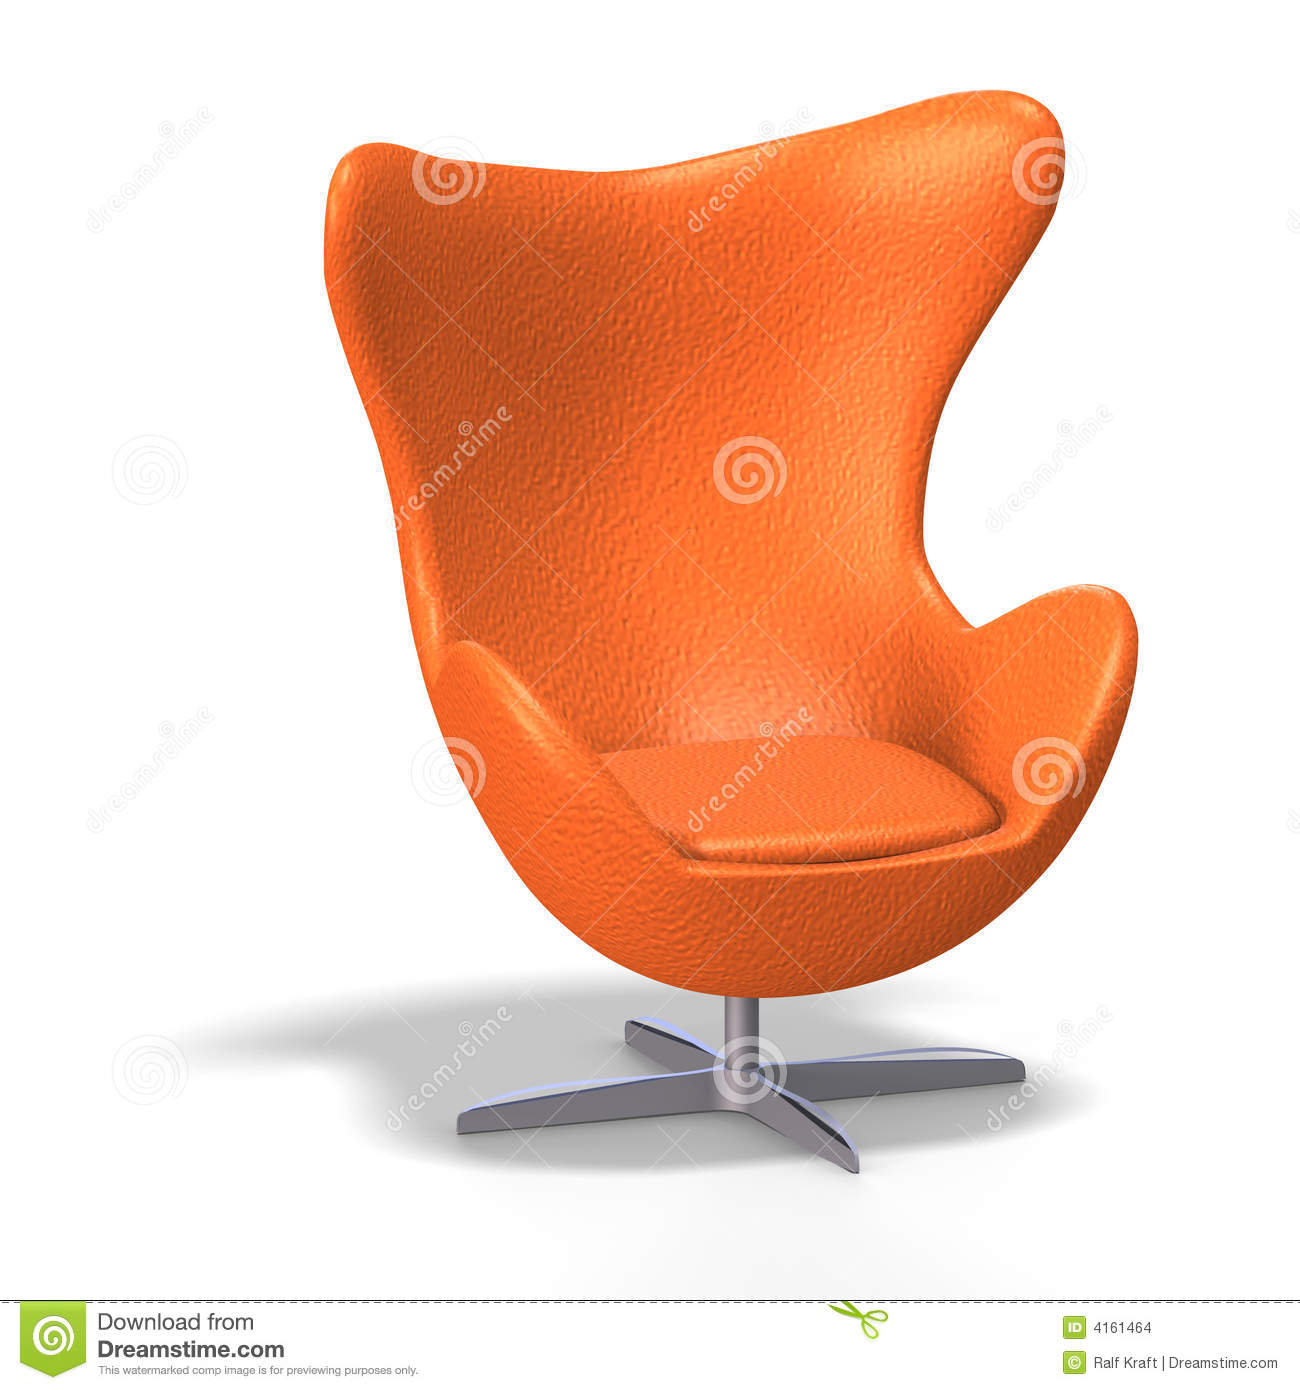 Egg chair stock images image 4161464 for 70s egg chair